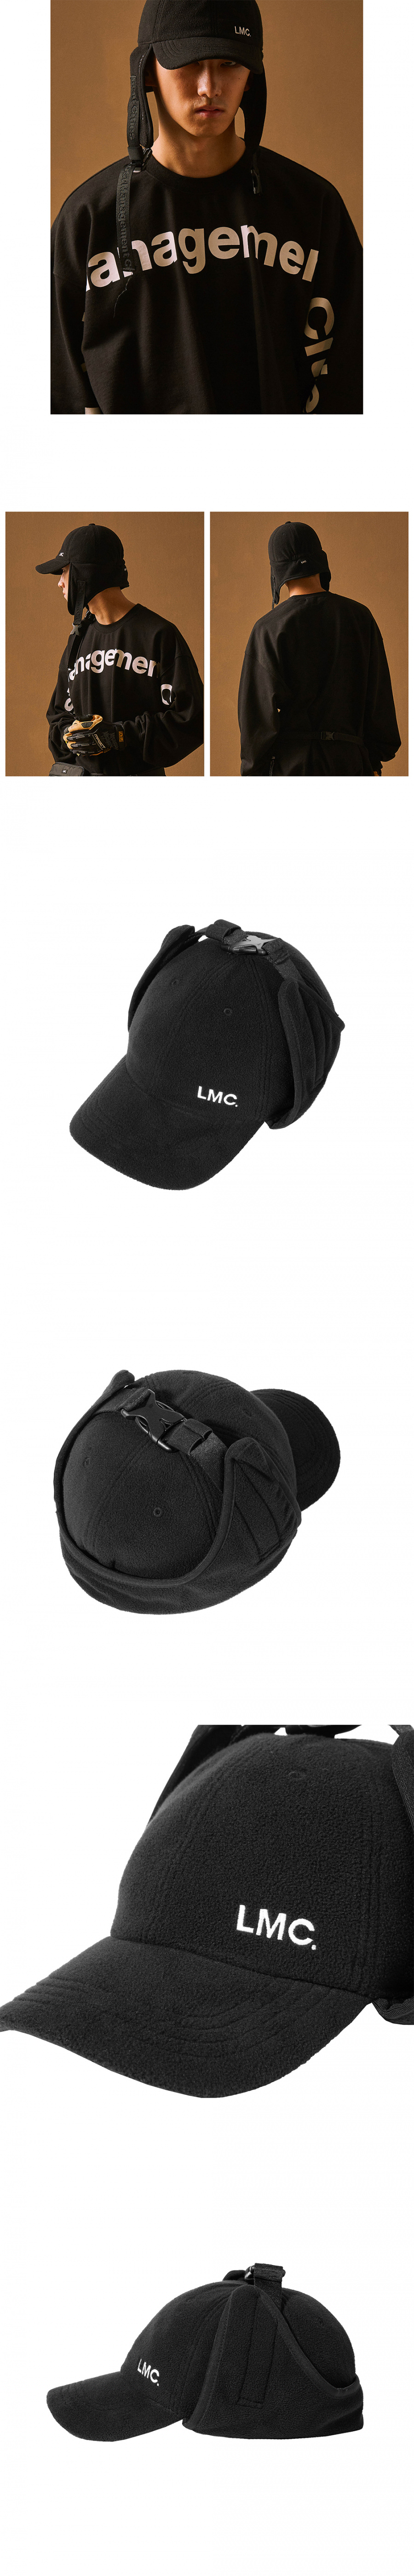 엘엠씨(LMC) LMC FLEECE EARFLAP CAP black